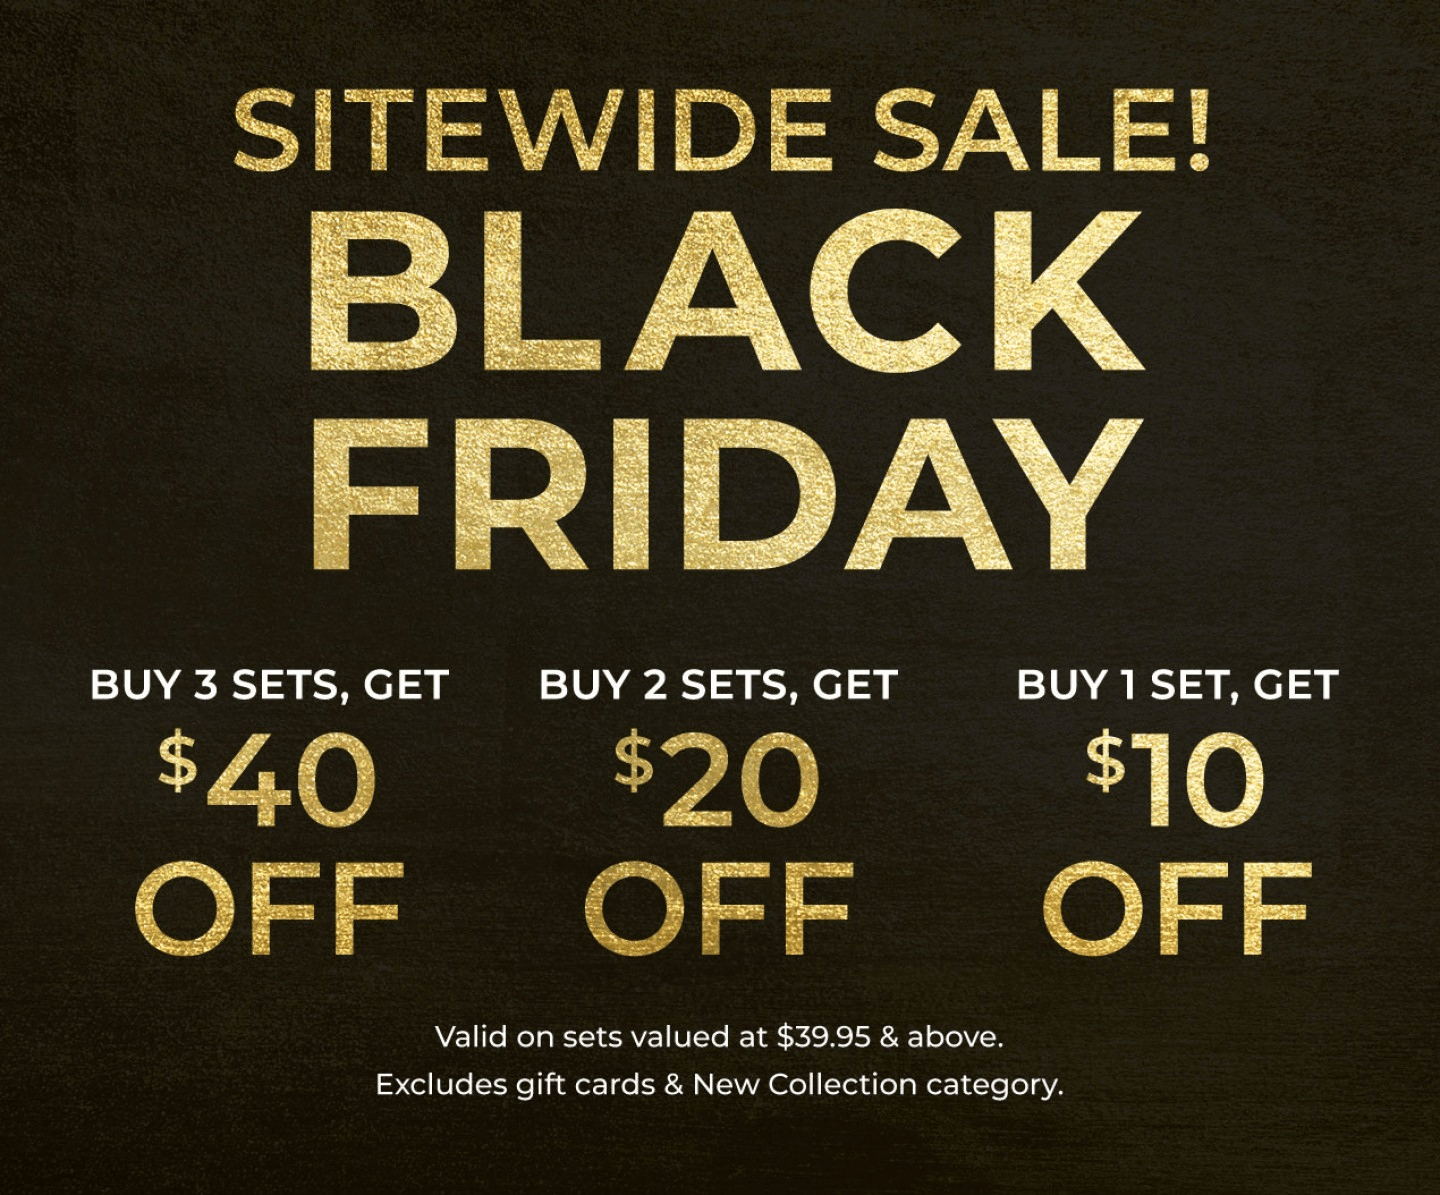 Black Friday Adore Me Deals – First Set $19.95 + BOGO!